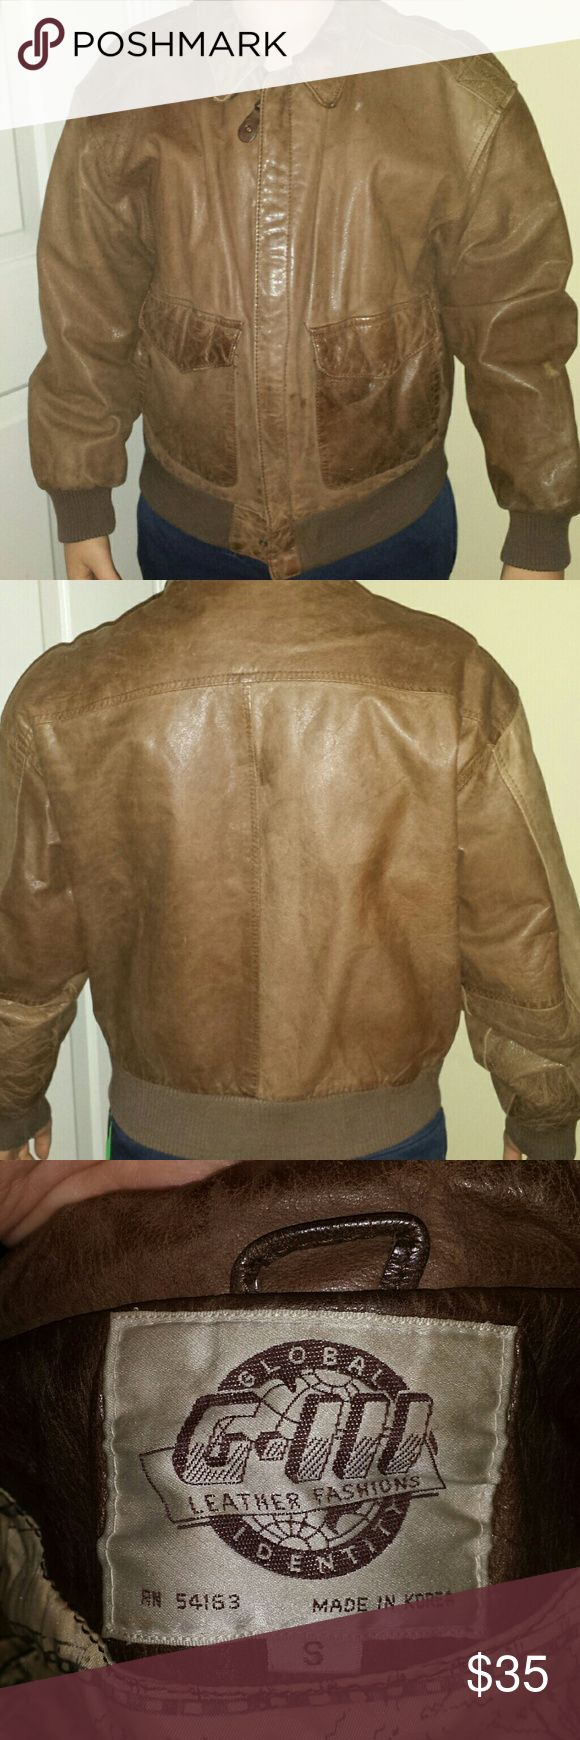 "Vintage 80's Unisex Leather Bomber Jacket Straight from the 80's!  *Excellent vintage condition * Ribbed waistband and wristbands.  * Poly satin printed lining is intact. No rips, tears or stains. Zipper and snaps all work.   * Leather has aged patina, as well as a purposeful distressed look - it was the 80's, they distressed everything back then :)  * Men's small. Would fit a women's medium. The model in the pic is a 5'2"", 115 lb young man.  * Armpit to armpit when measured flat is 22""…"